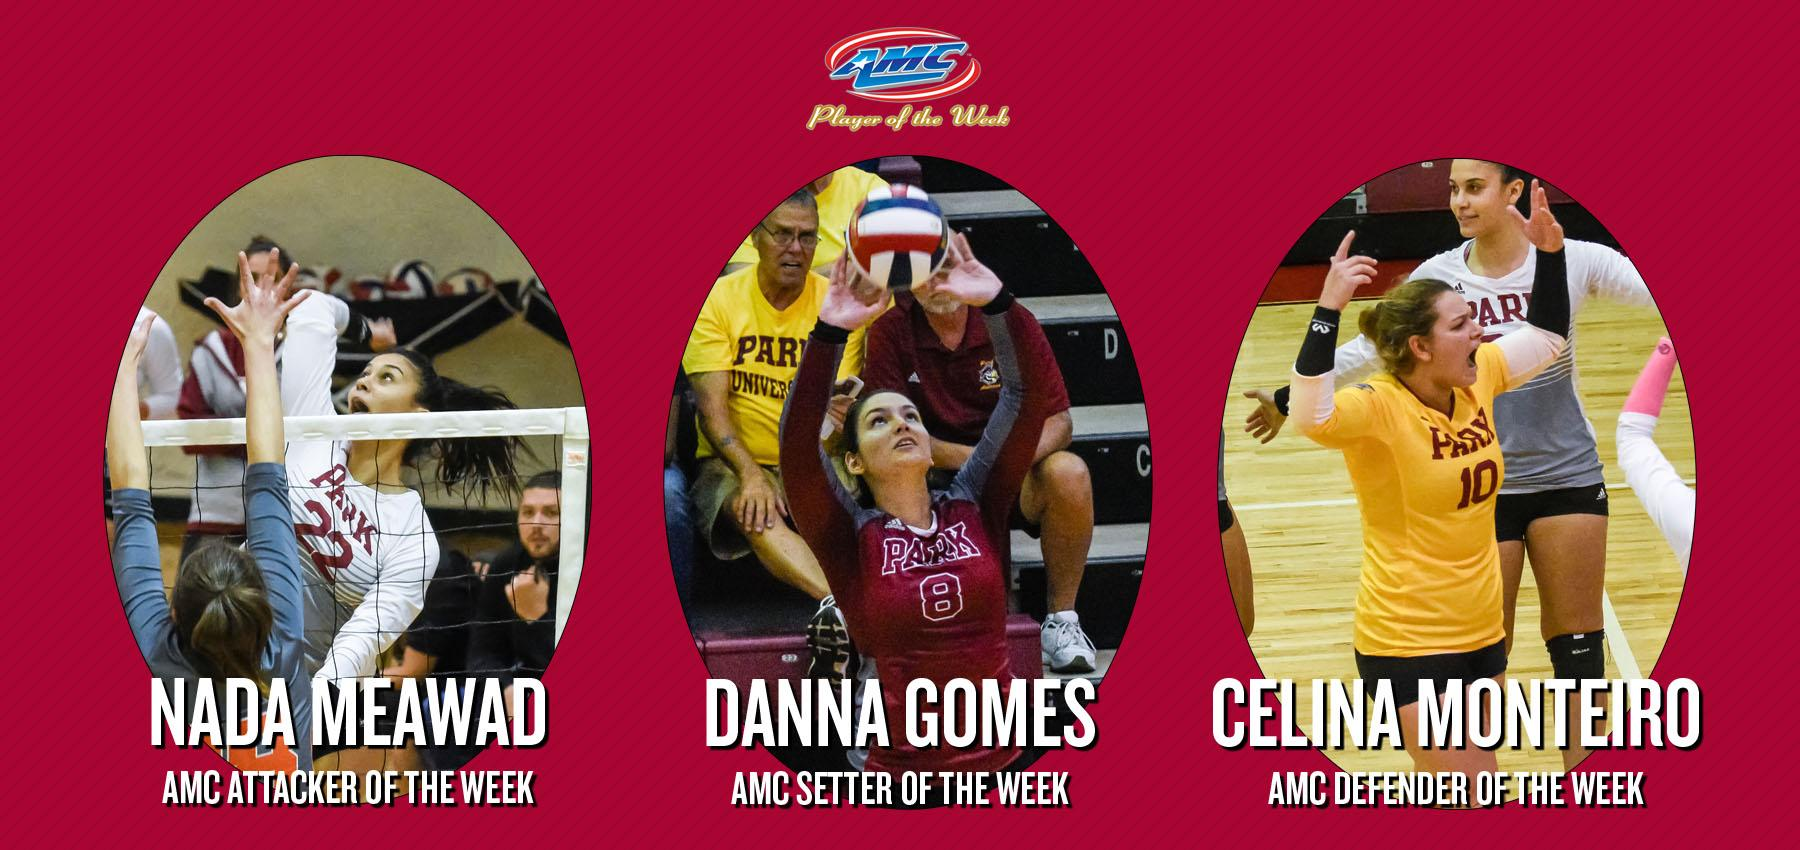 Pirates Strike Again for Three Conference Volleyball Awards, Sweeping Attacker, Defender and Setter of the Week in the AMC